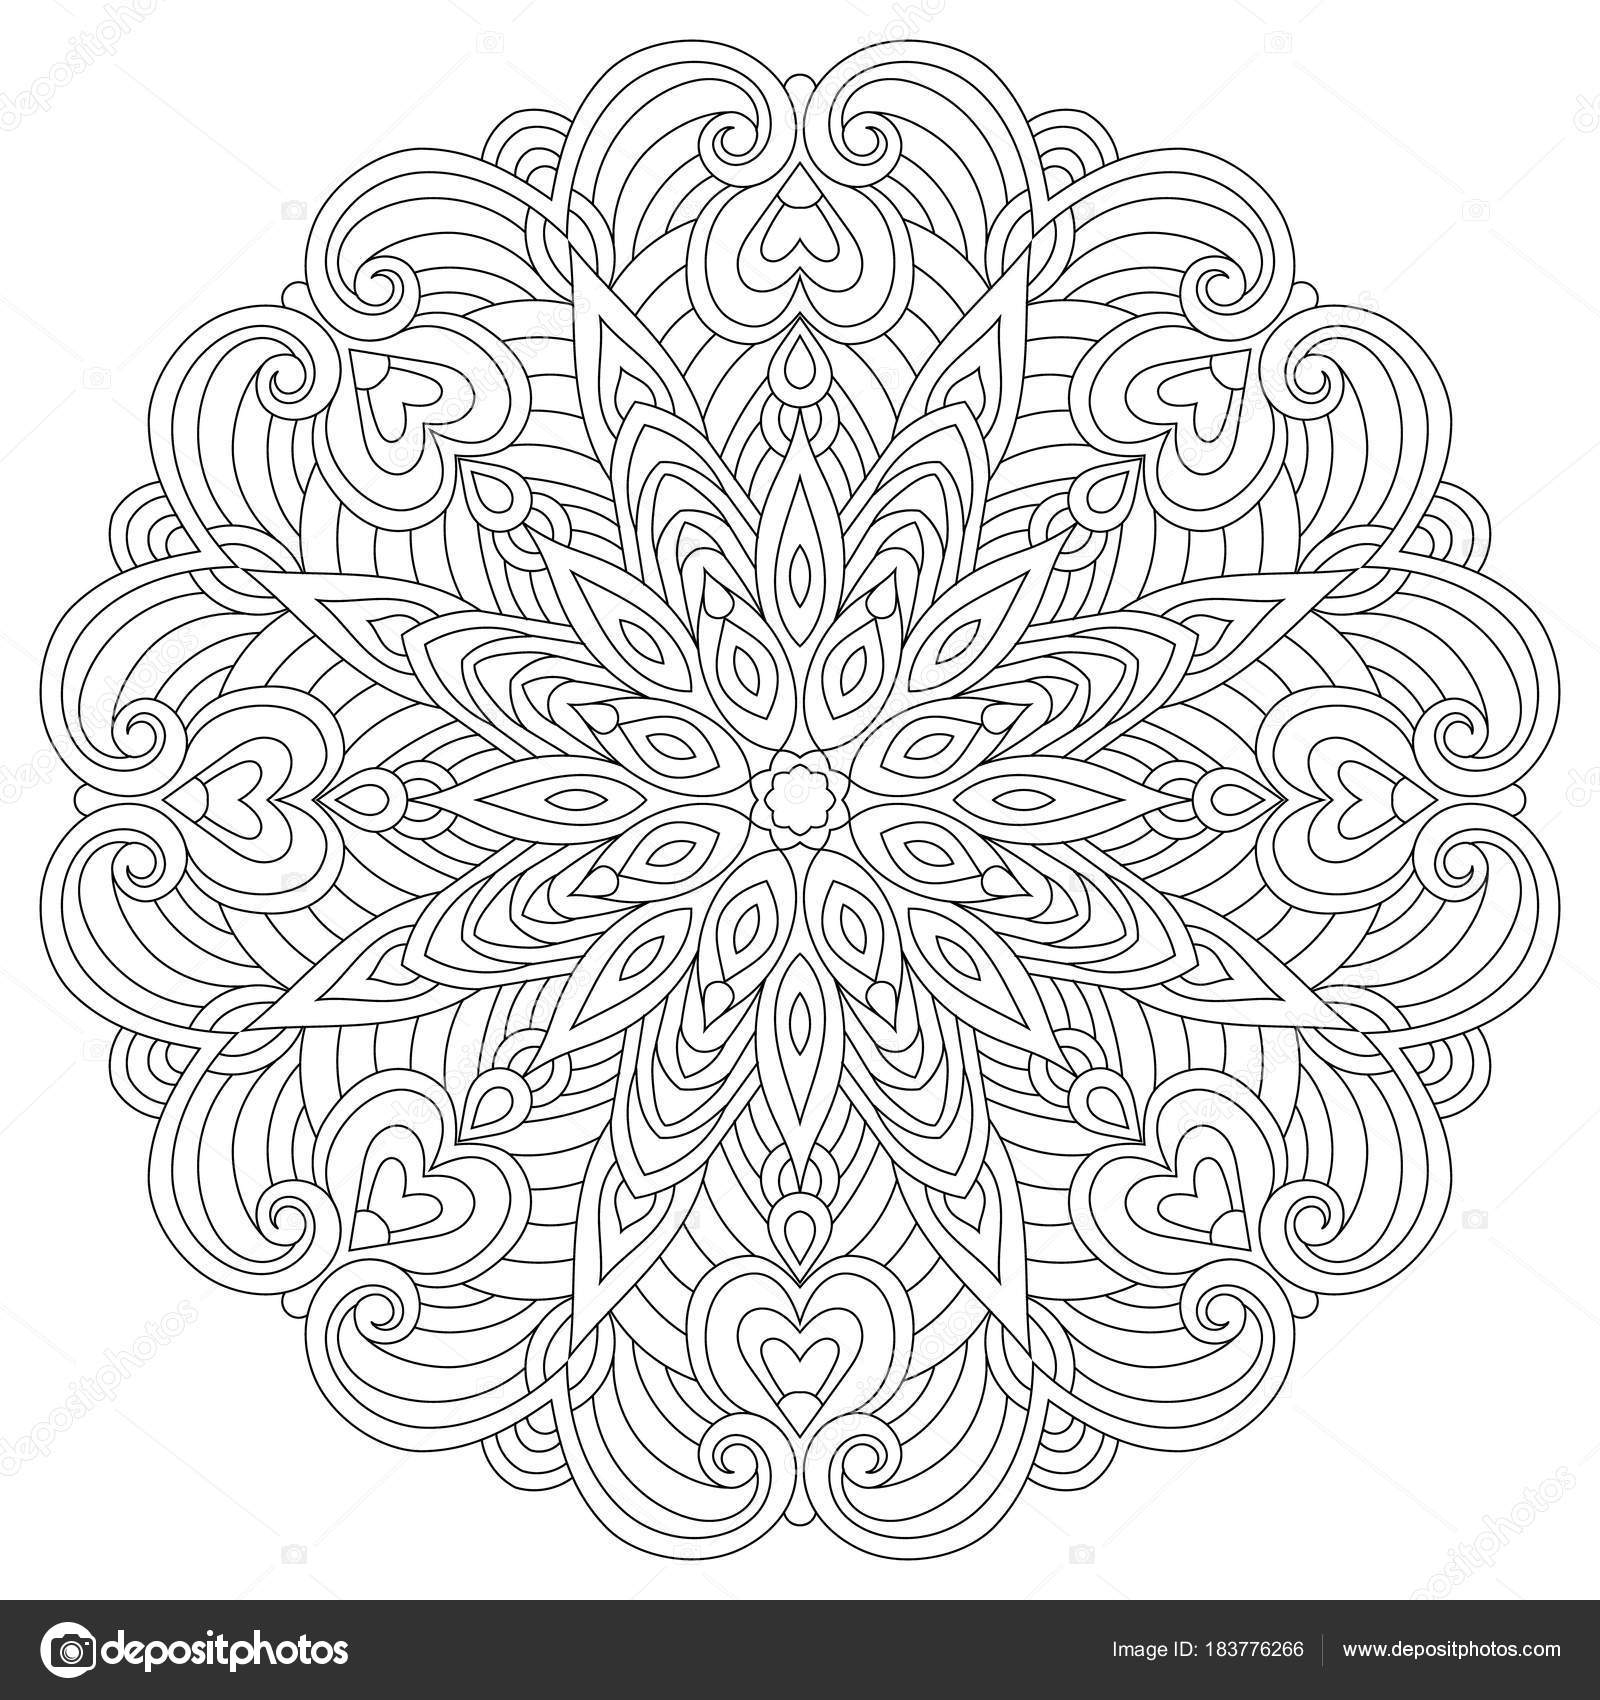 Stock Illustration Flower Circular Mandala For Adults Coloring Book Page Design Anti Stress Black And White